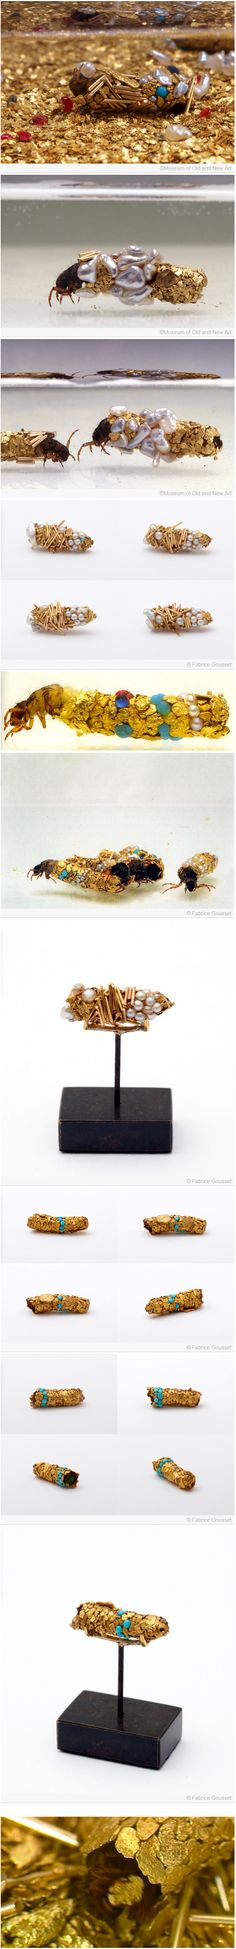 INSECT-ART (artiste Hubert Duprat & insect trichoptères)